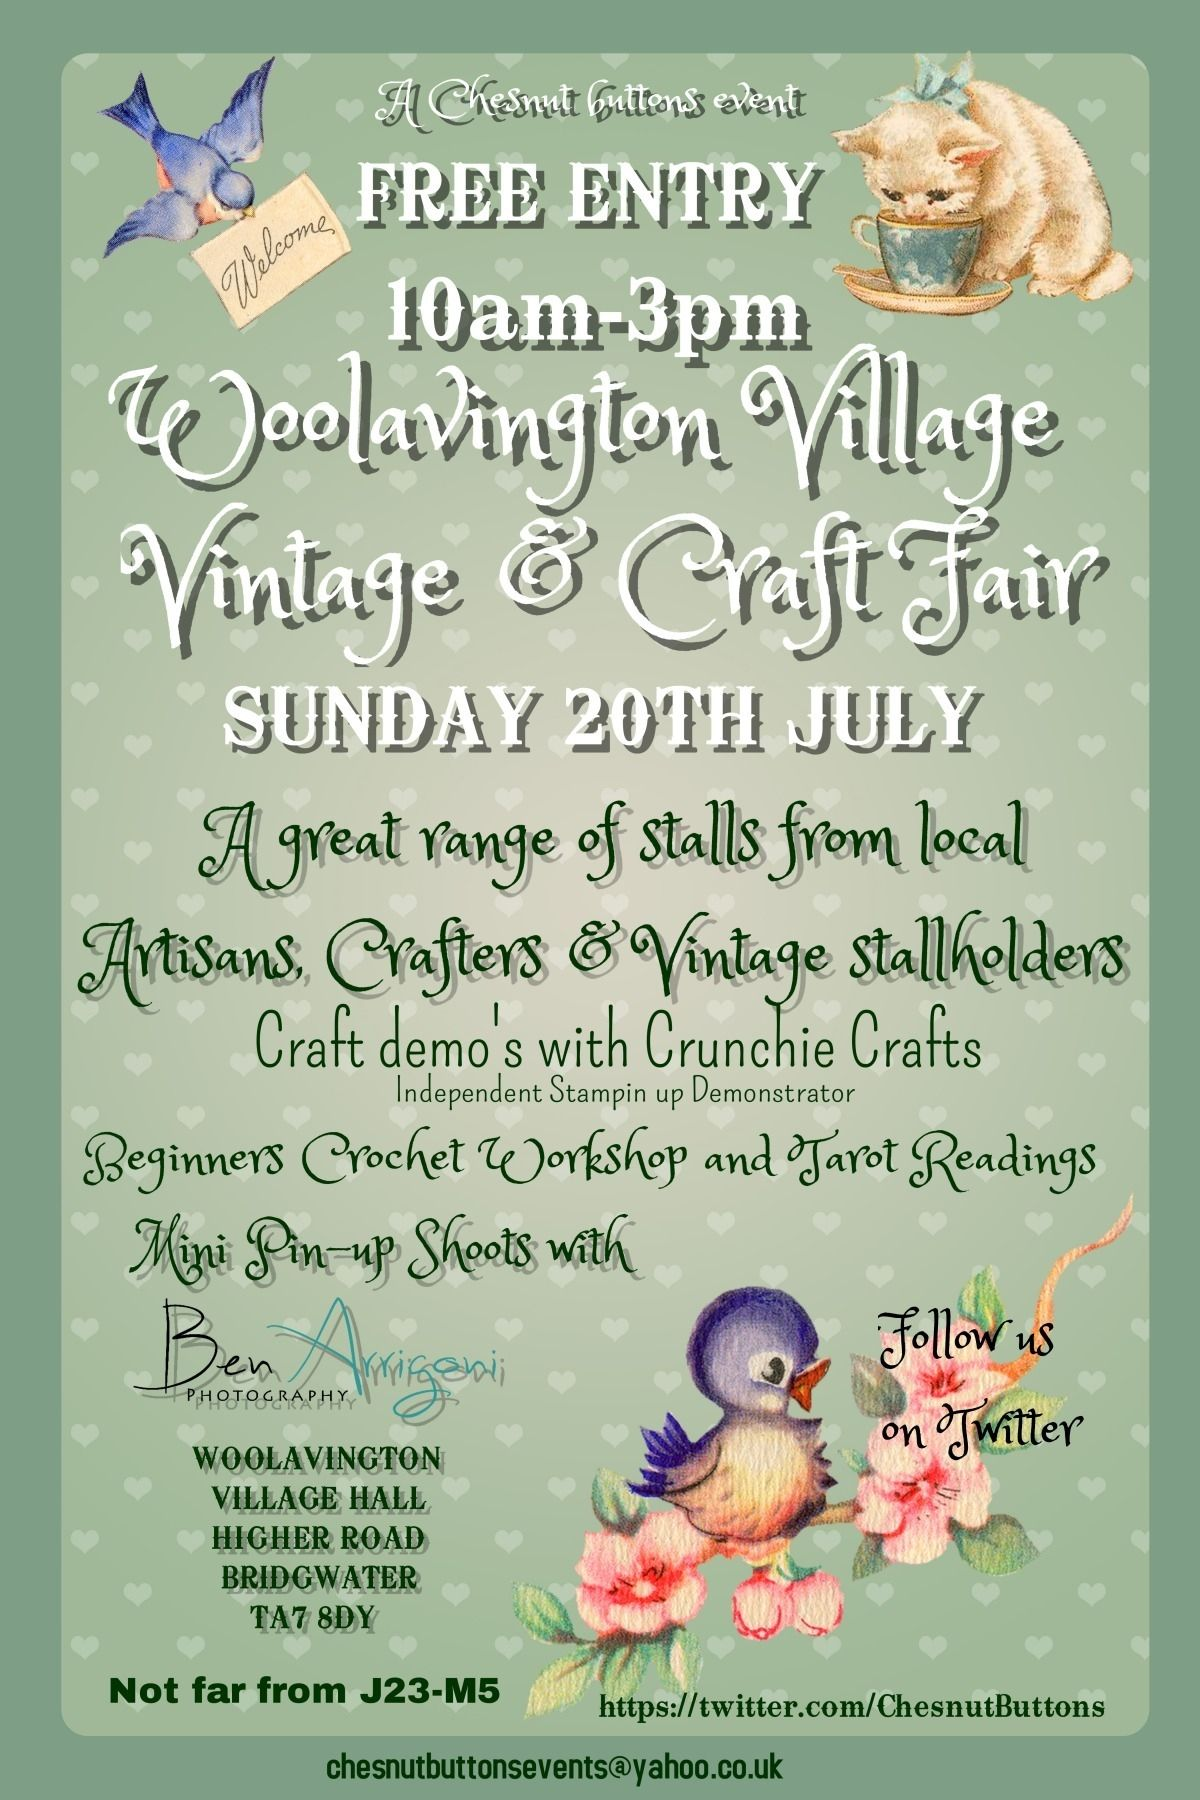 This will be a fantastic day!! lots going on crochet and craft demos, tarot readings, a tearoom,pin up style photo shoots and loads of vintage and handmade stalls